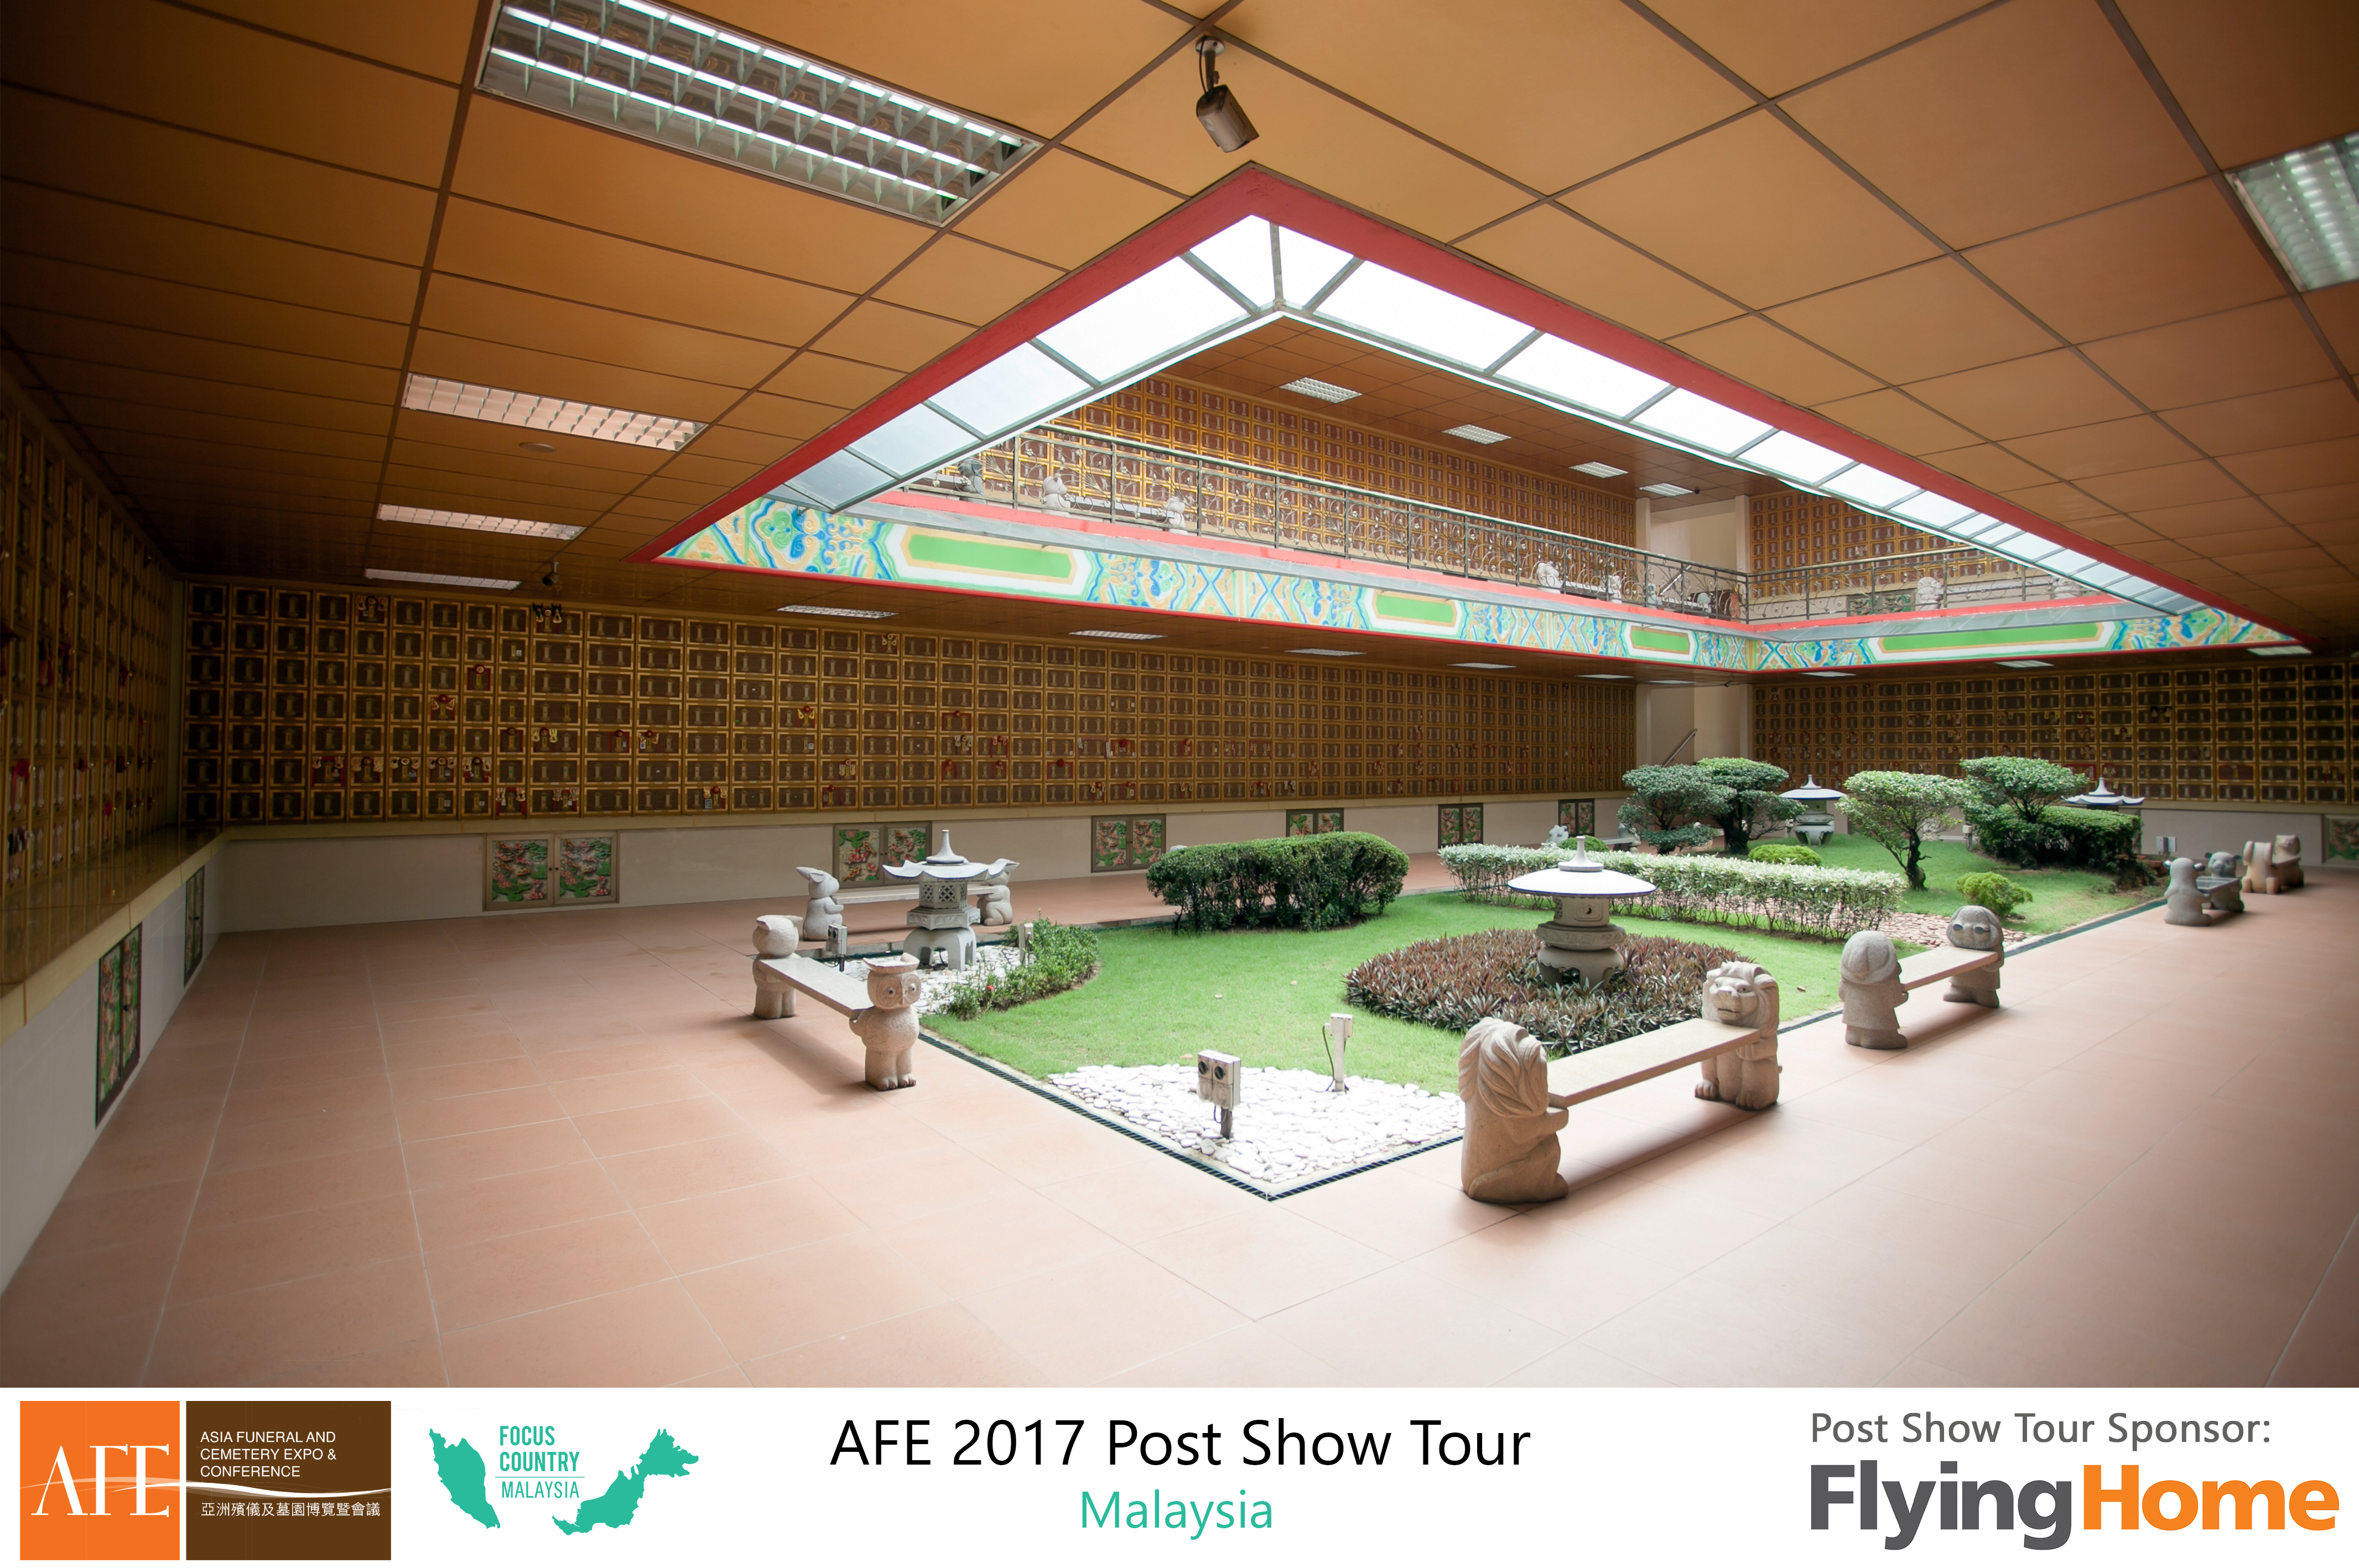 AFE Post Show Tour 2017 Day 4 - 10